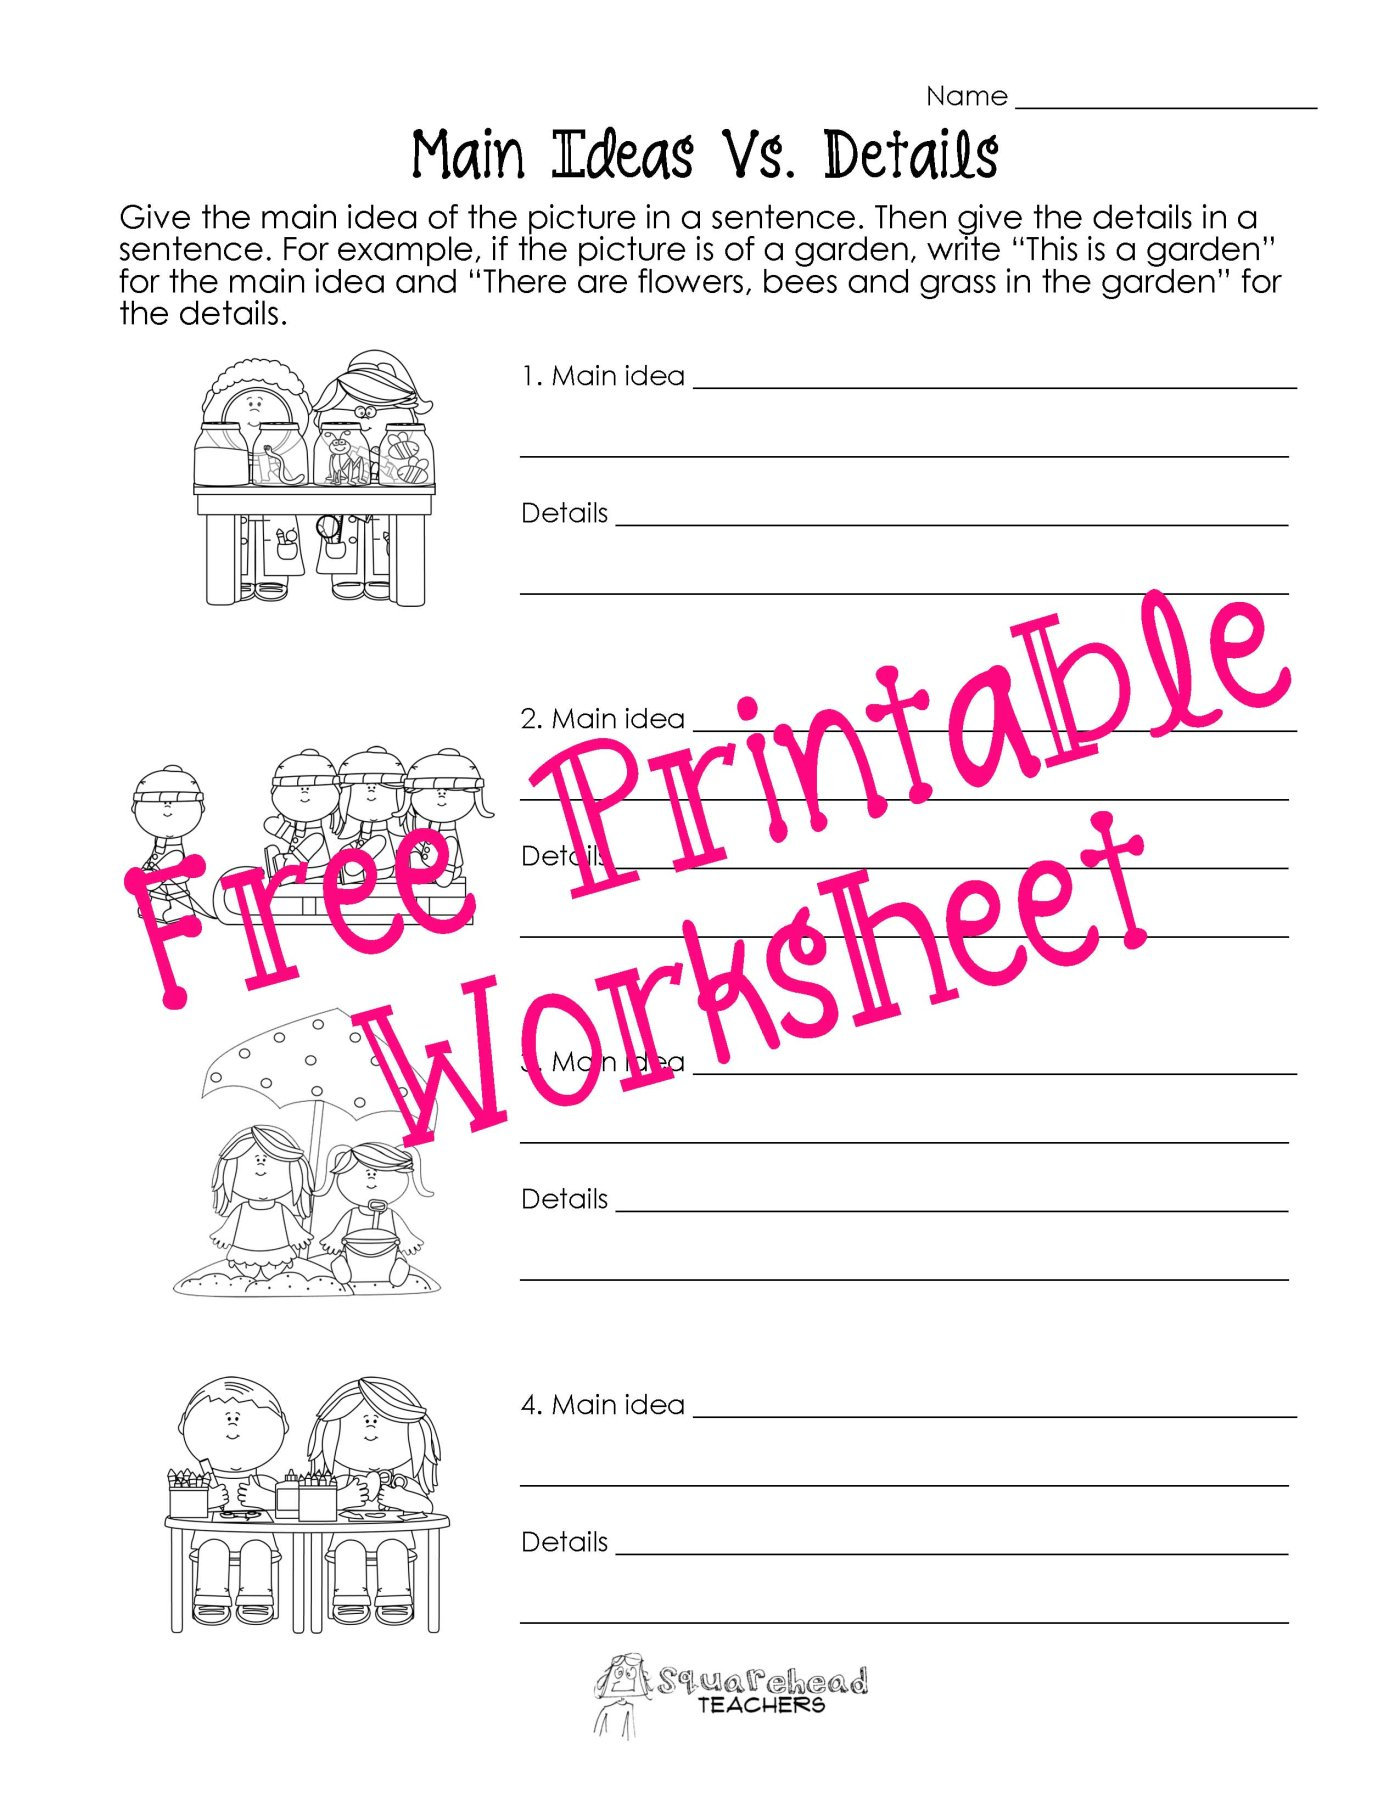 Idea And Details Worksheets 4th Grade Delibertad – Main Idea Worksheets 4th Grade